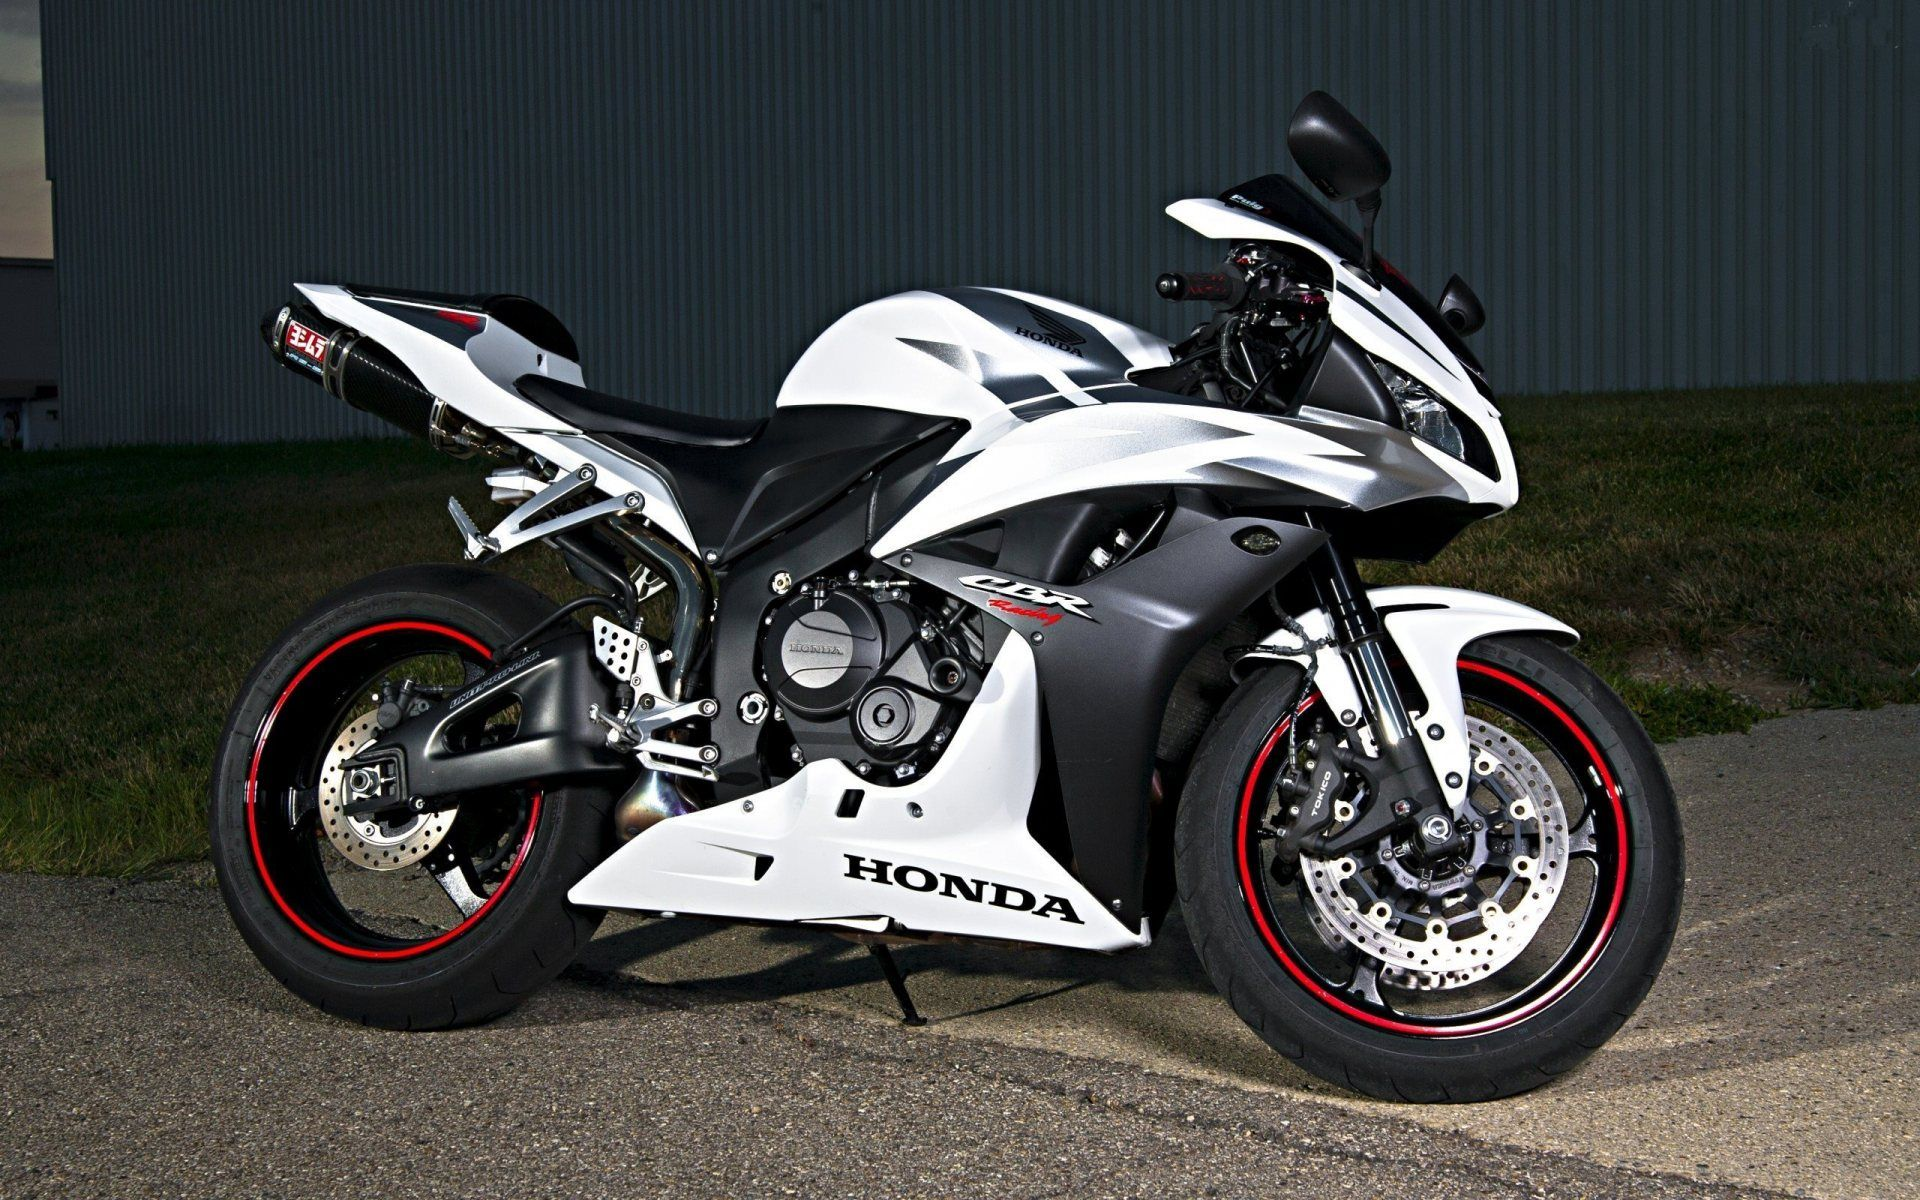 Honda CBR600RR Wallpaper HD Widescreen  Bikes Pinterest